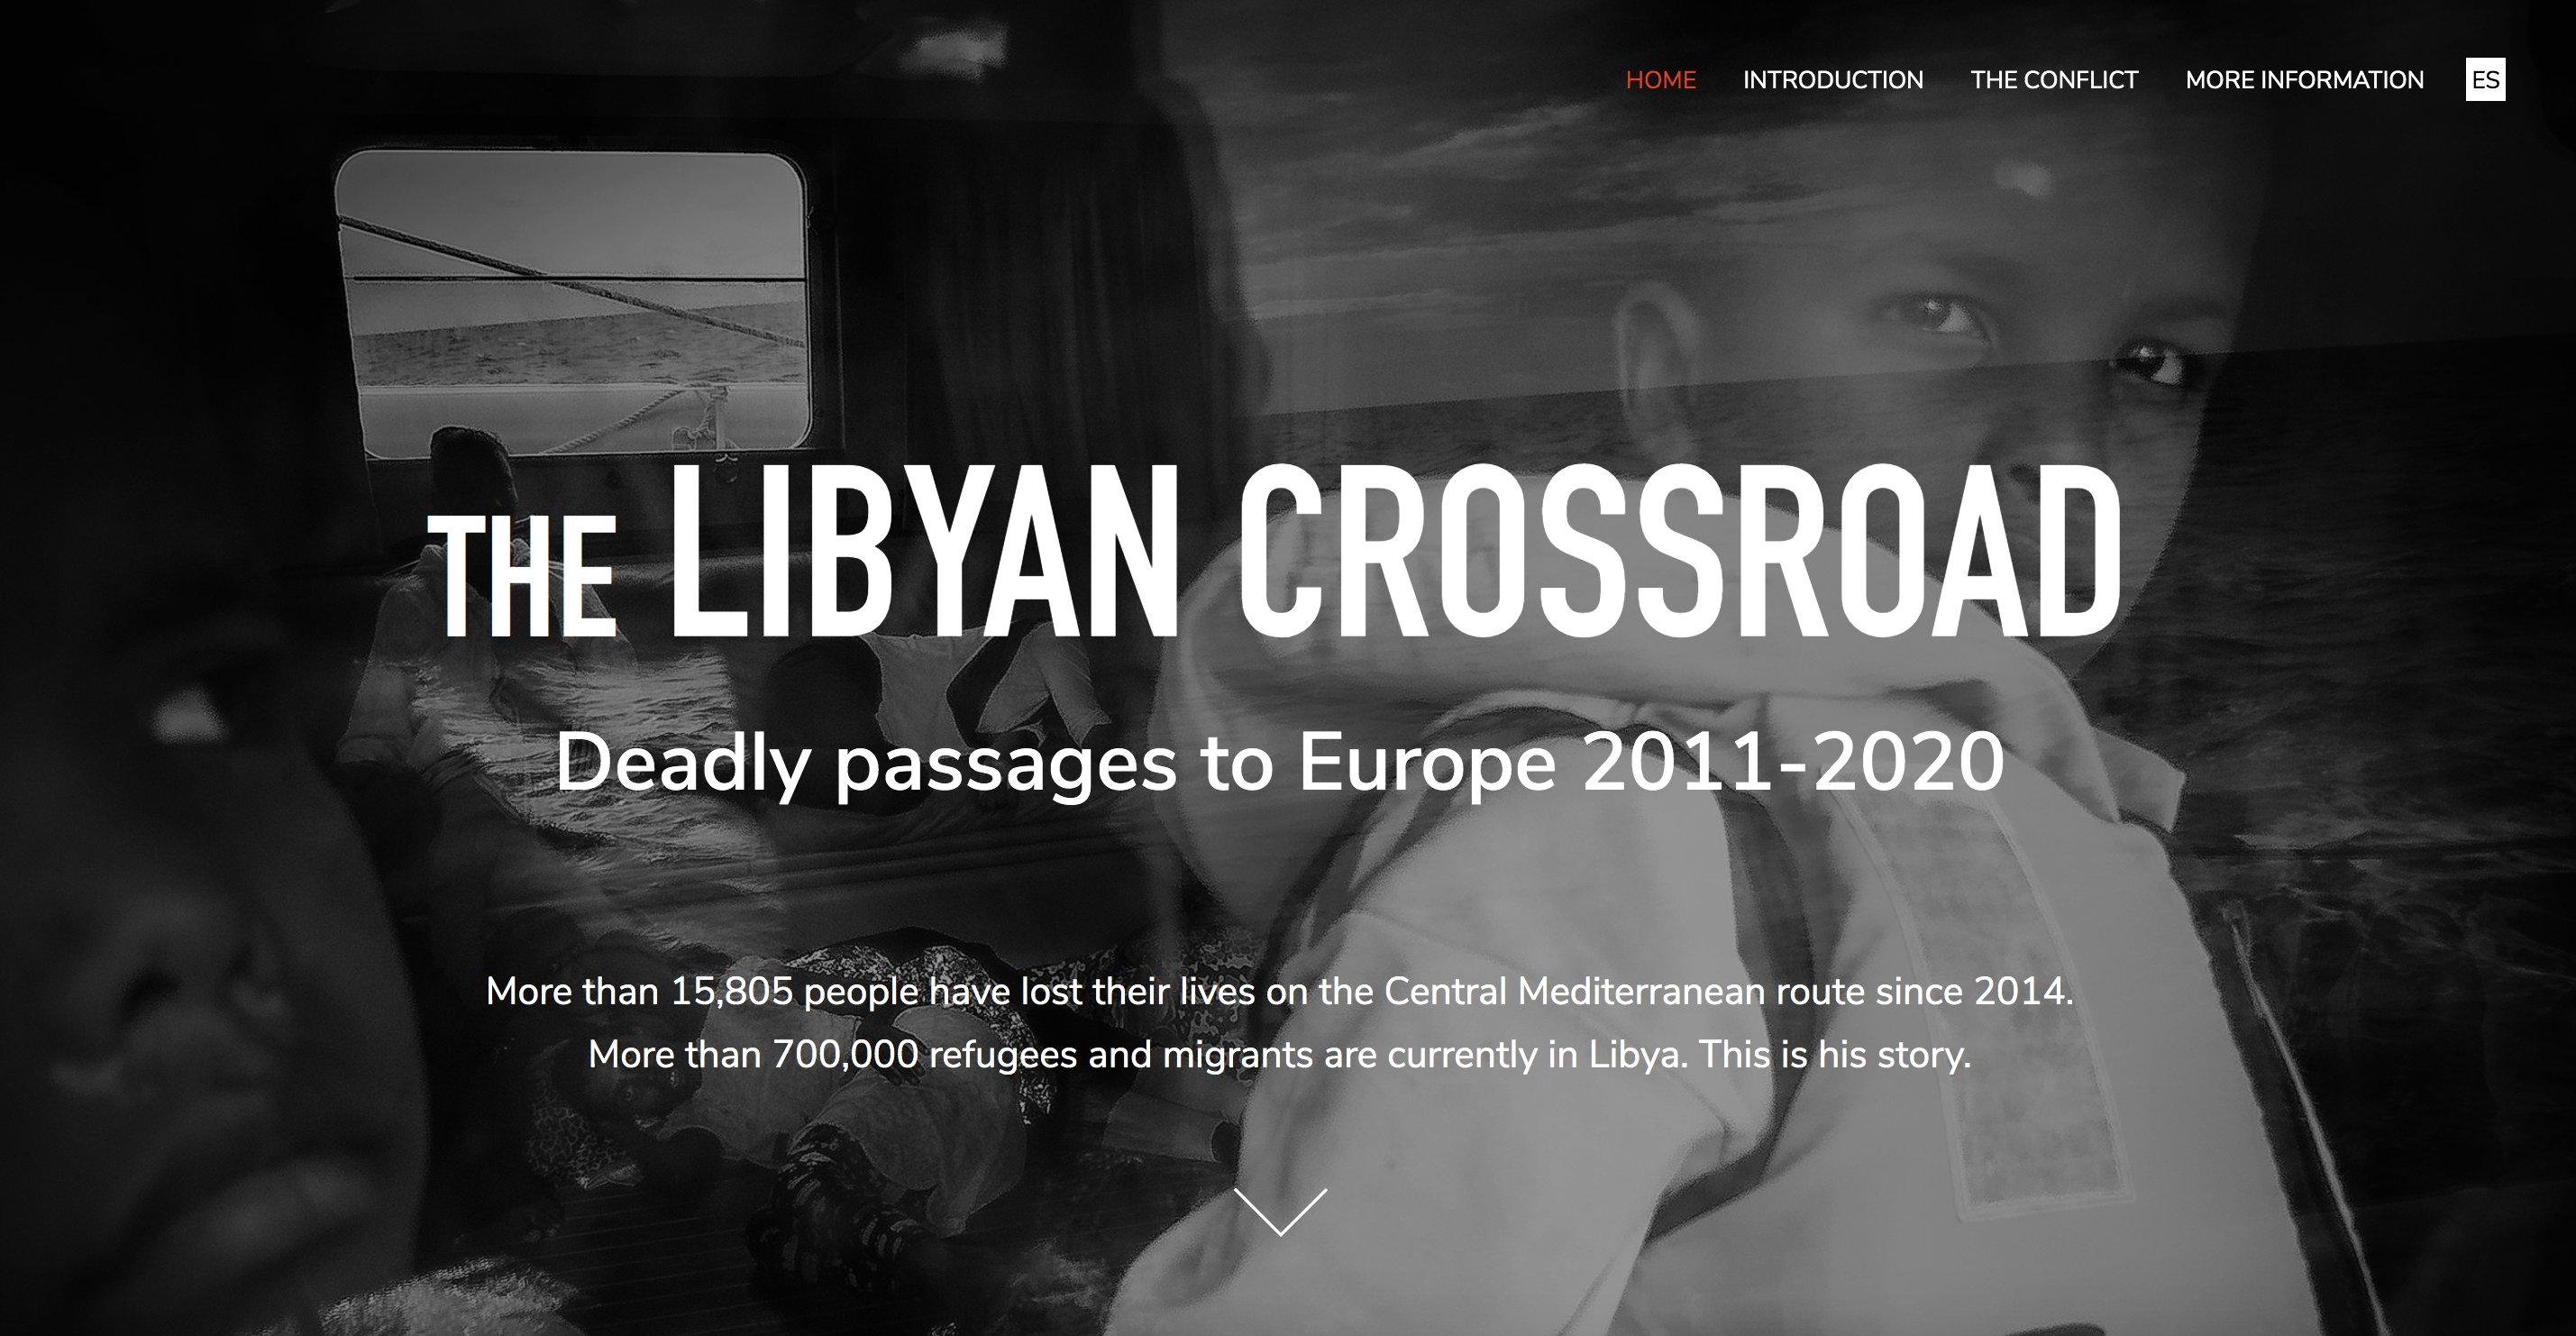 The libyan crossroad